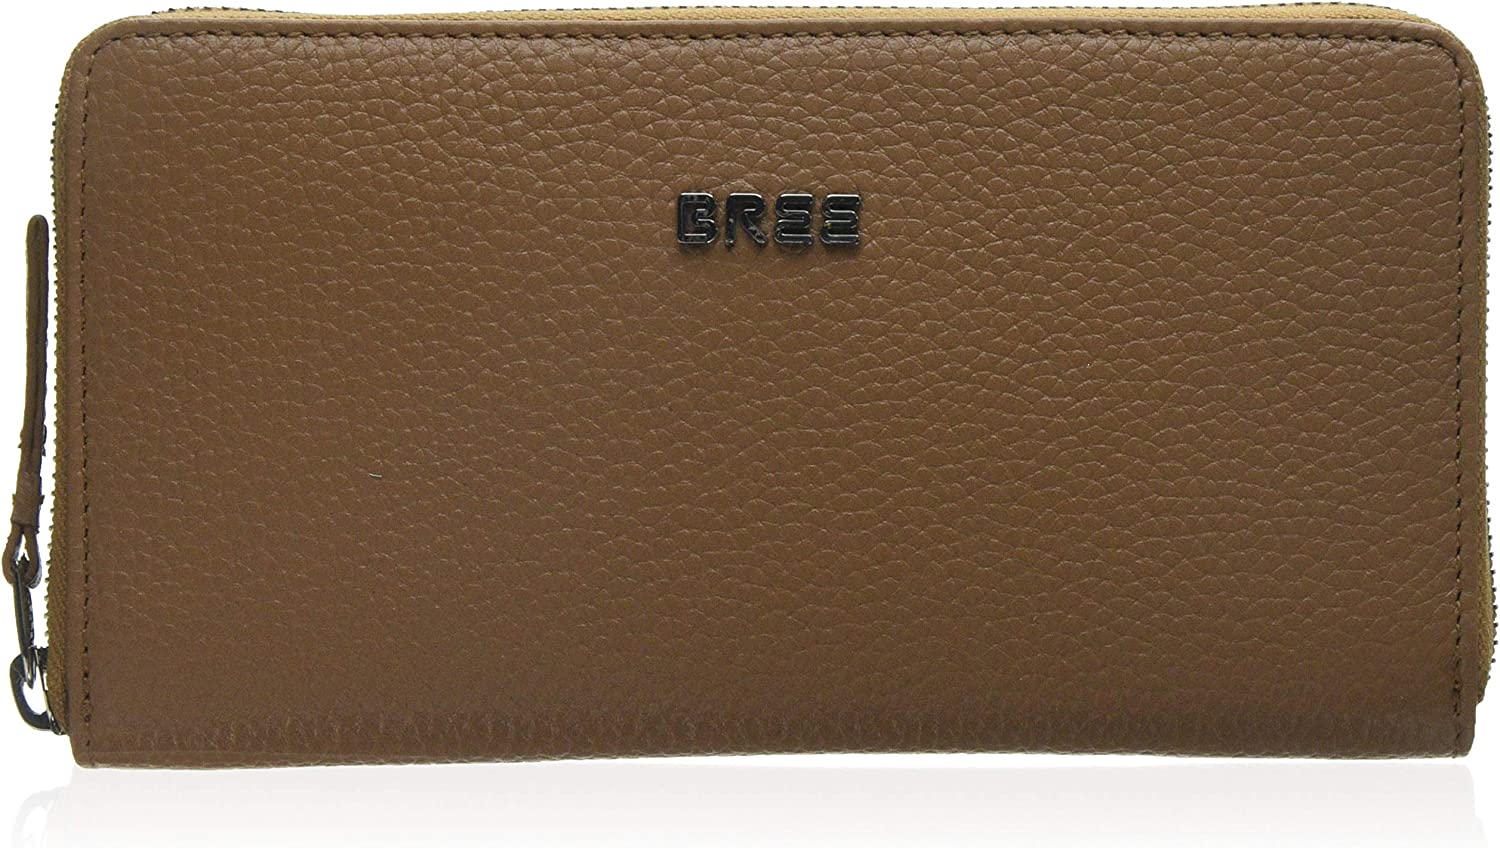 BREE Collection Nola New 101, Tan, Combi. Purse Grain, Women's Wallet, Brown (Tan), 2x10x12 cm (B x H T)